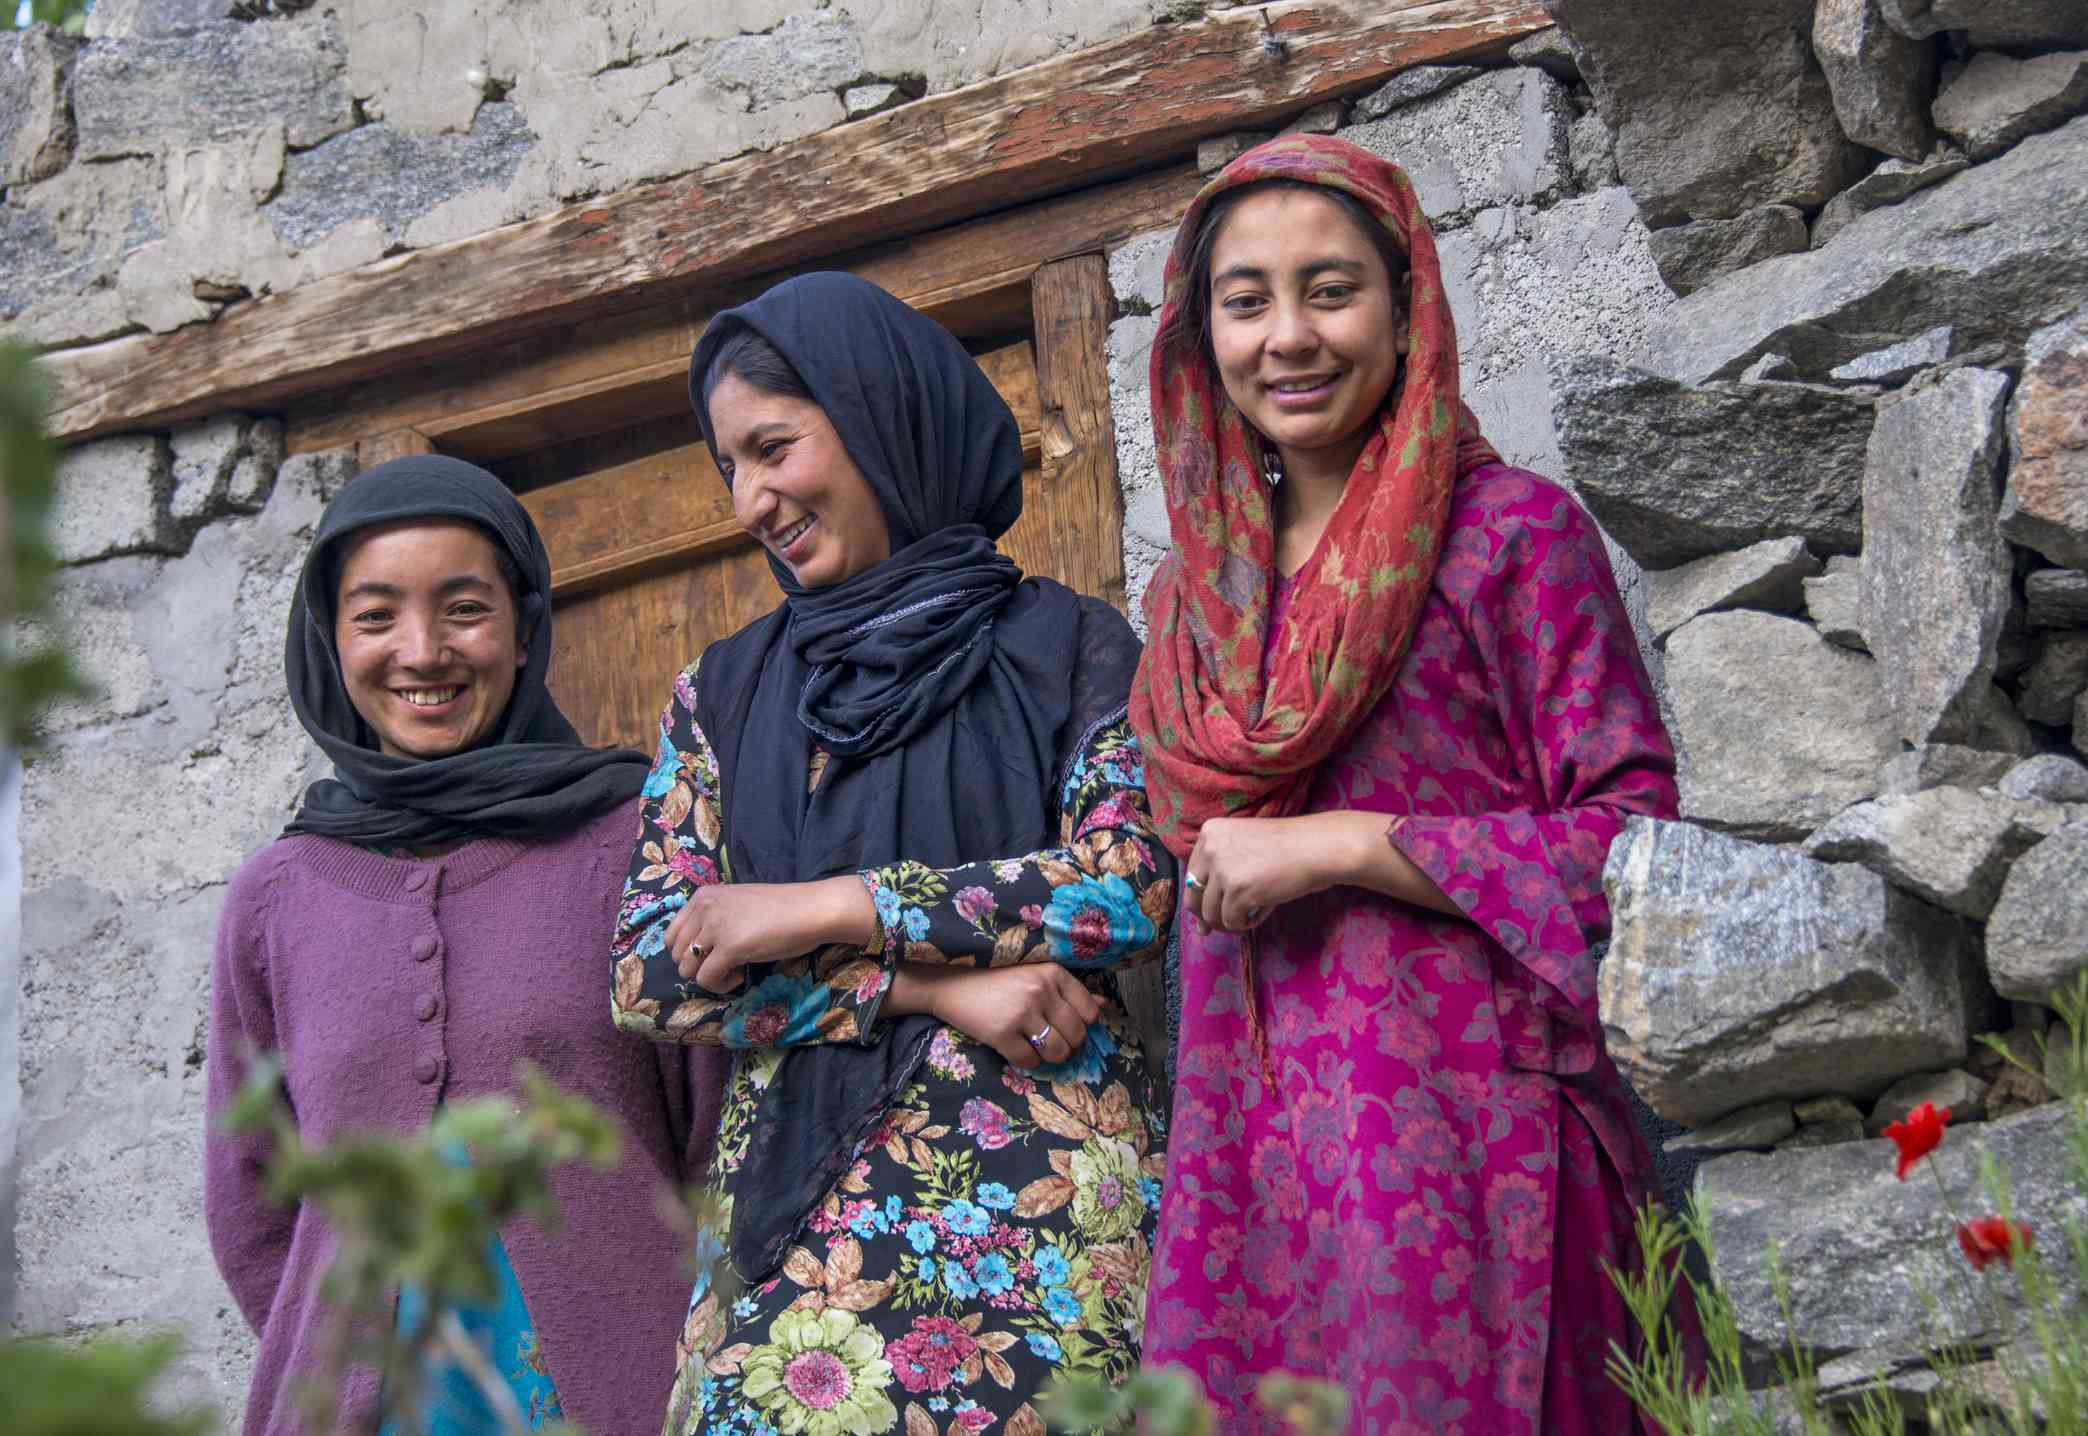 Three young women in Turtuk village. Turtuk is in Baltistan, under administration of India since 1971. Most villagers are Muslim.